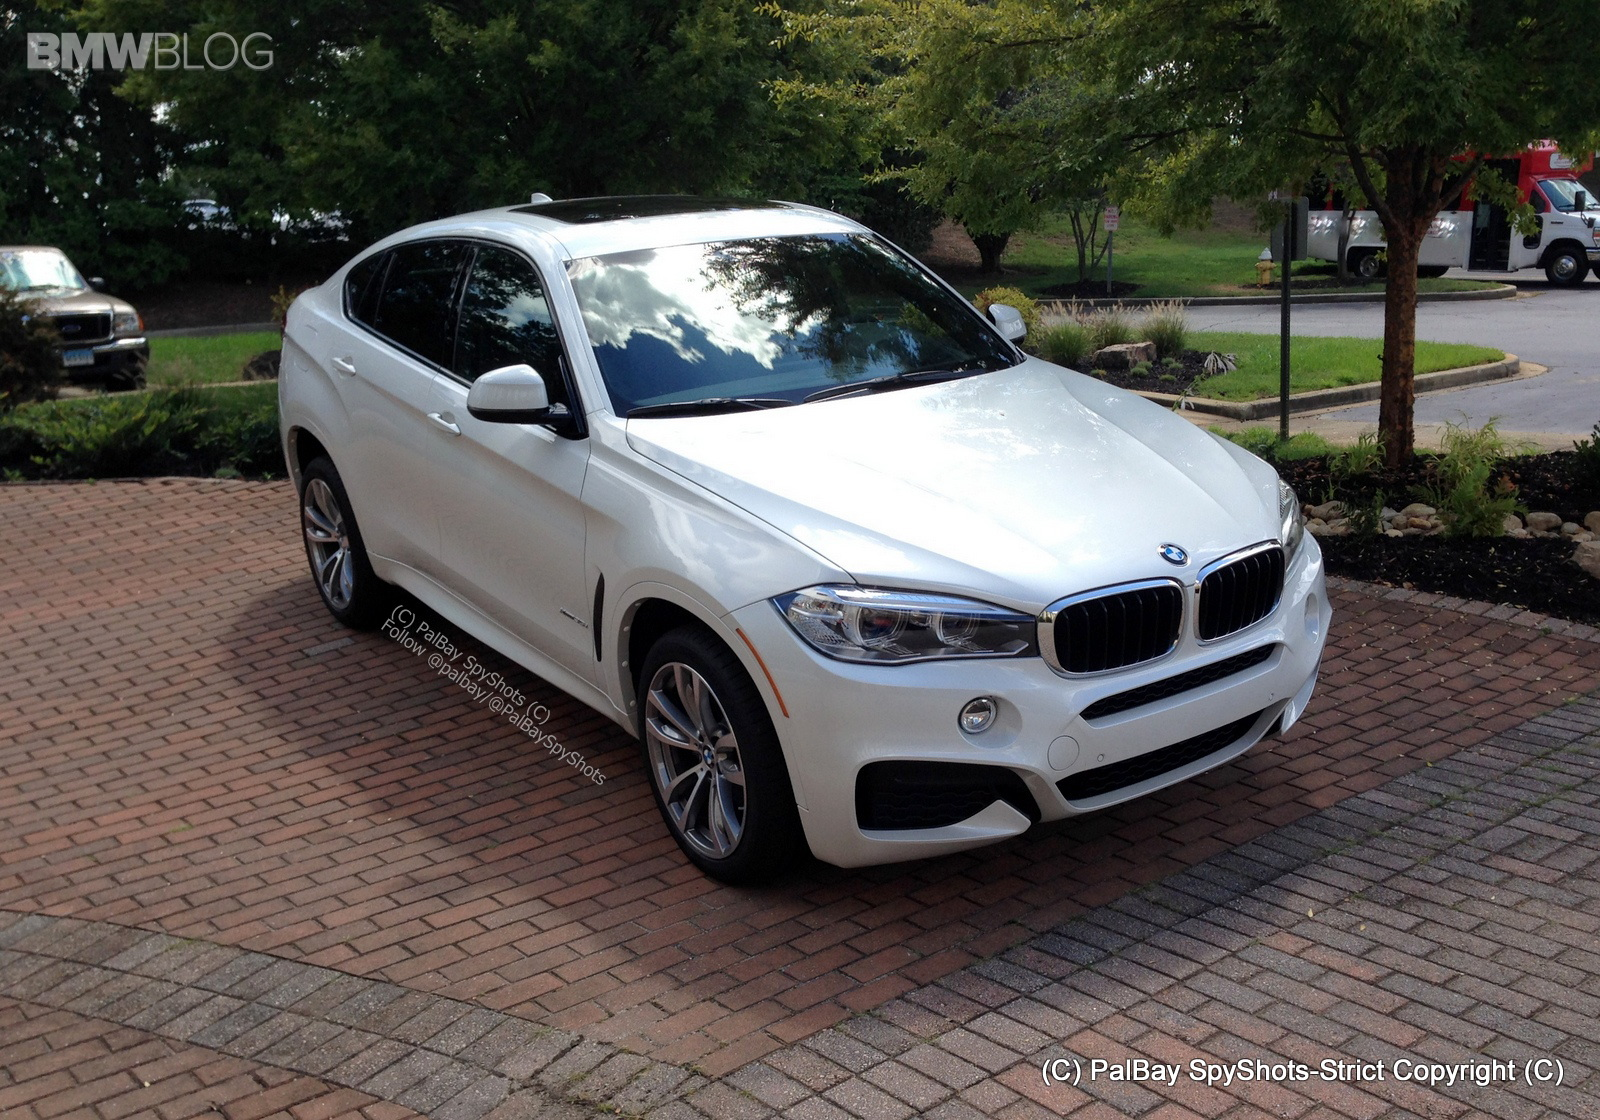 2016 Bmw X6 Xdrive35i M Sport Bmw Cars Review Release